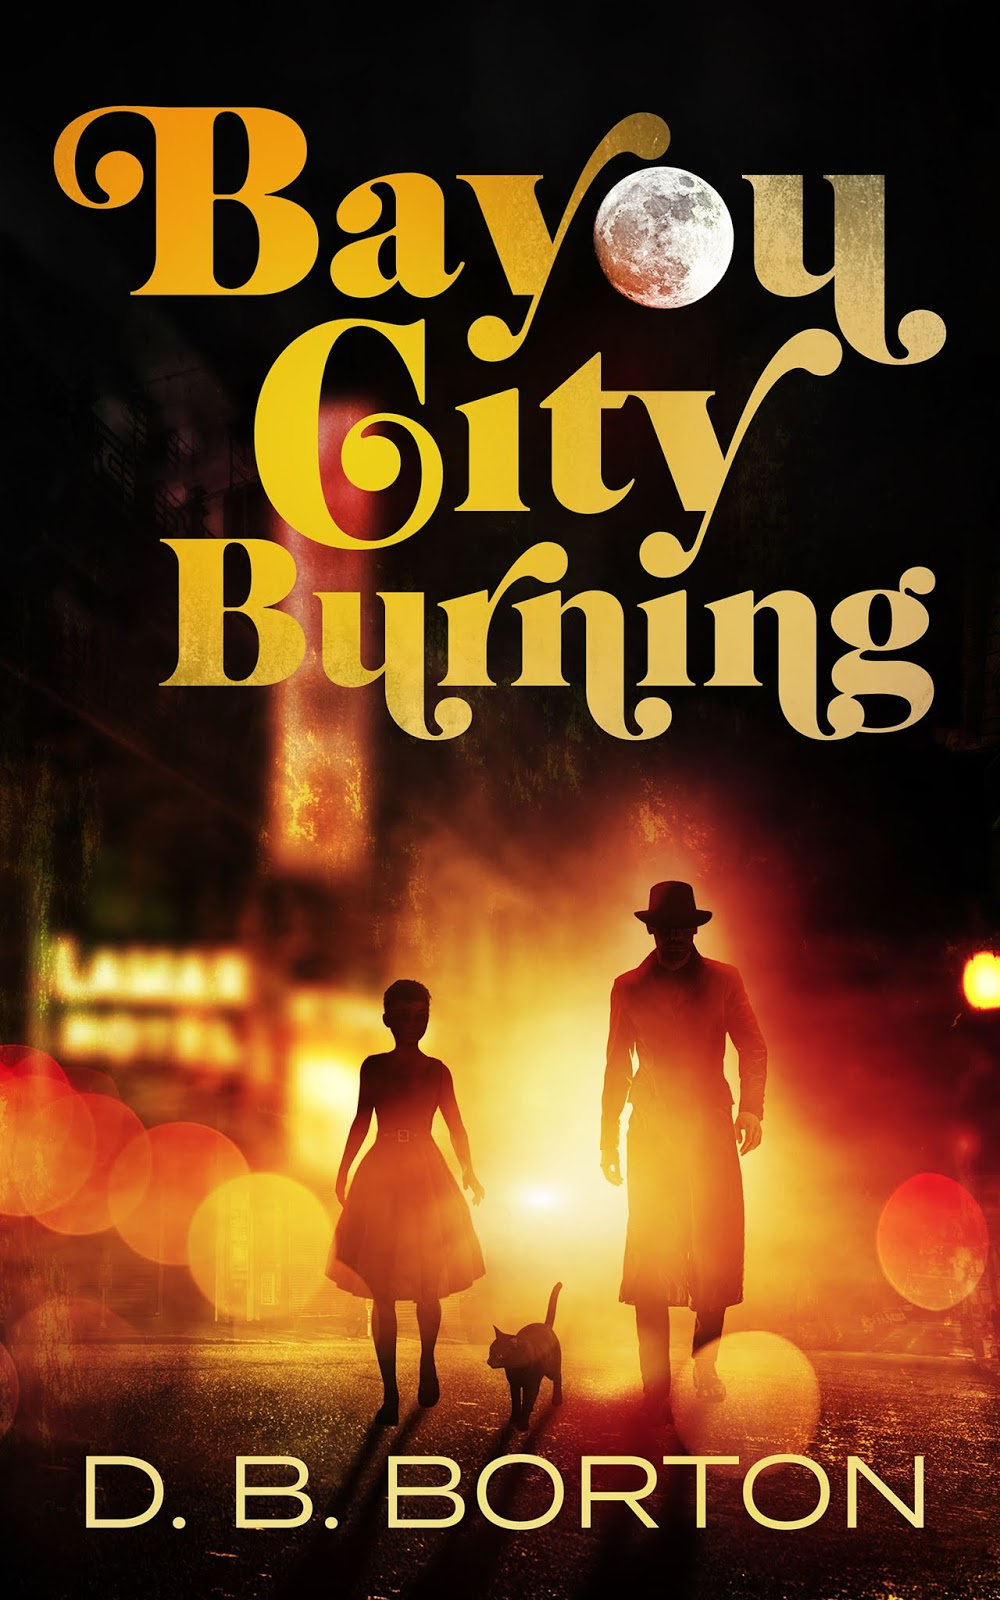 Bayou City Burning book cover